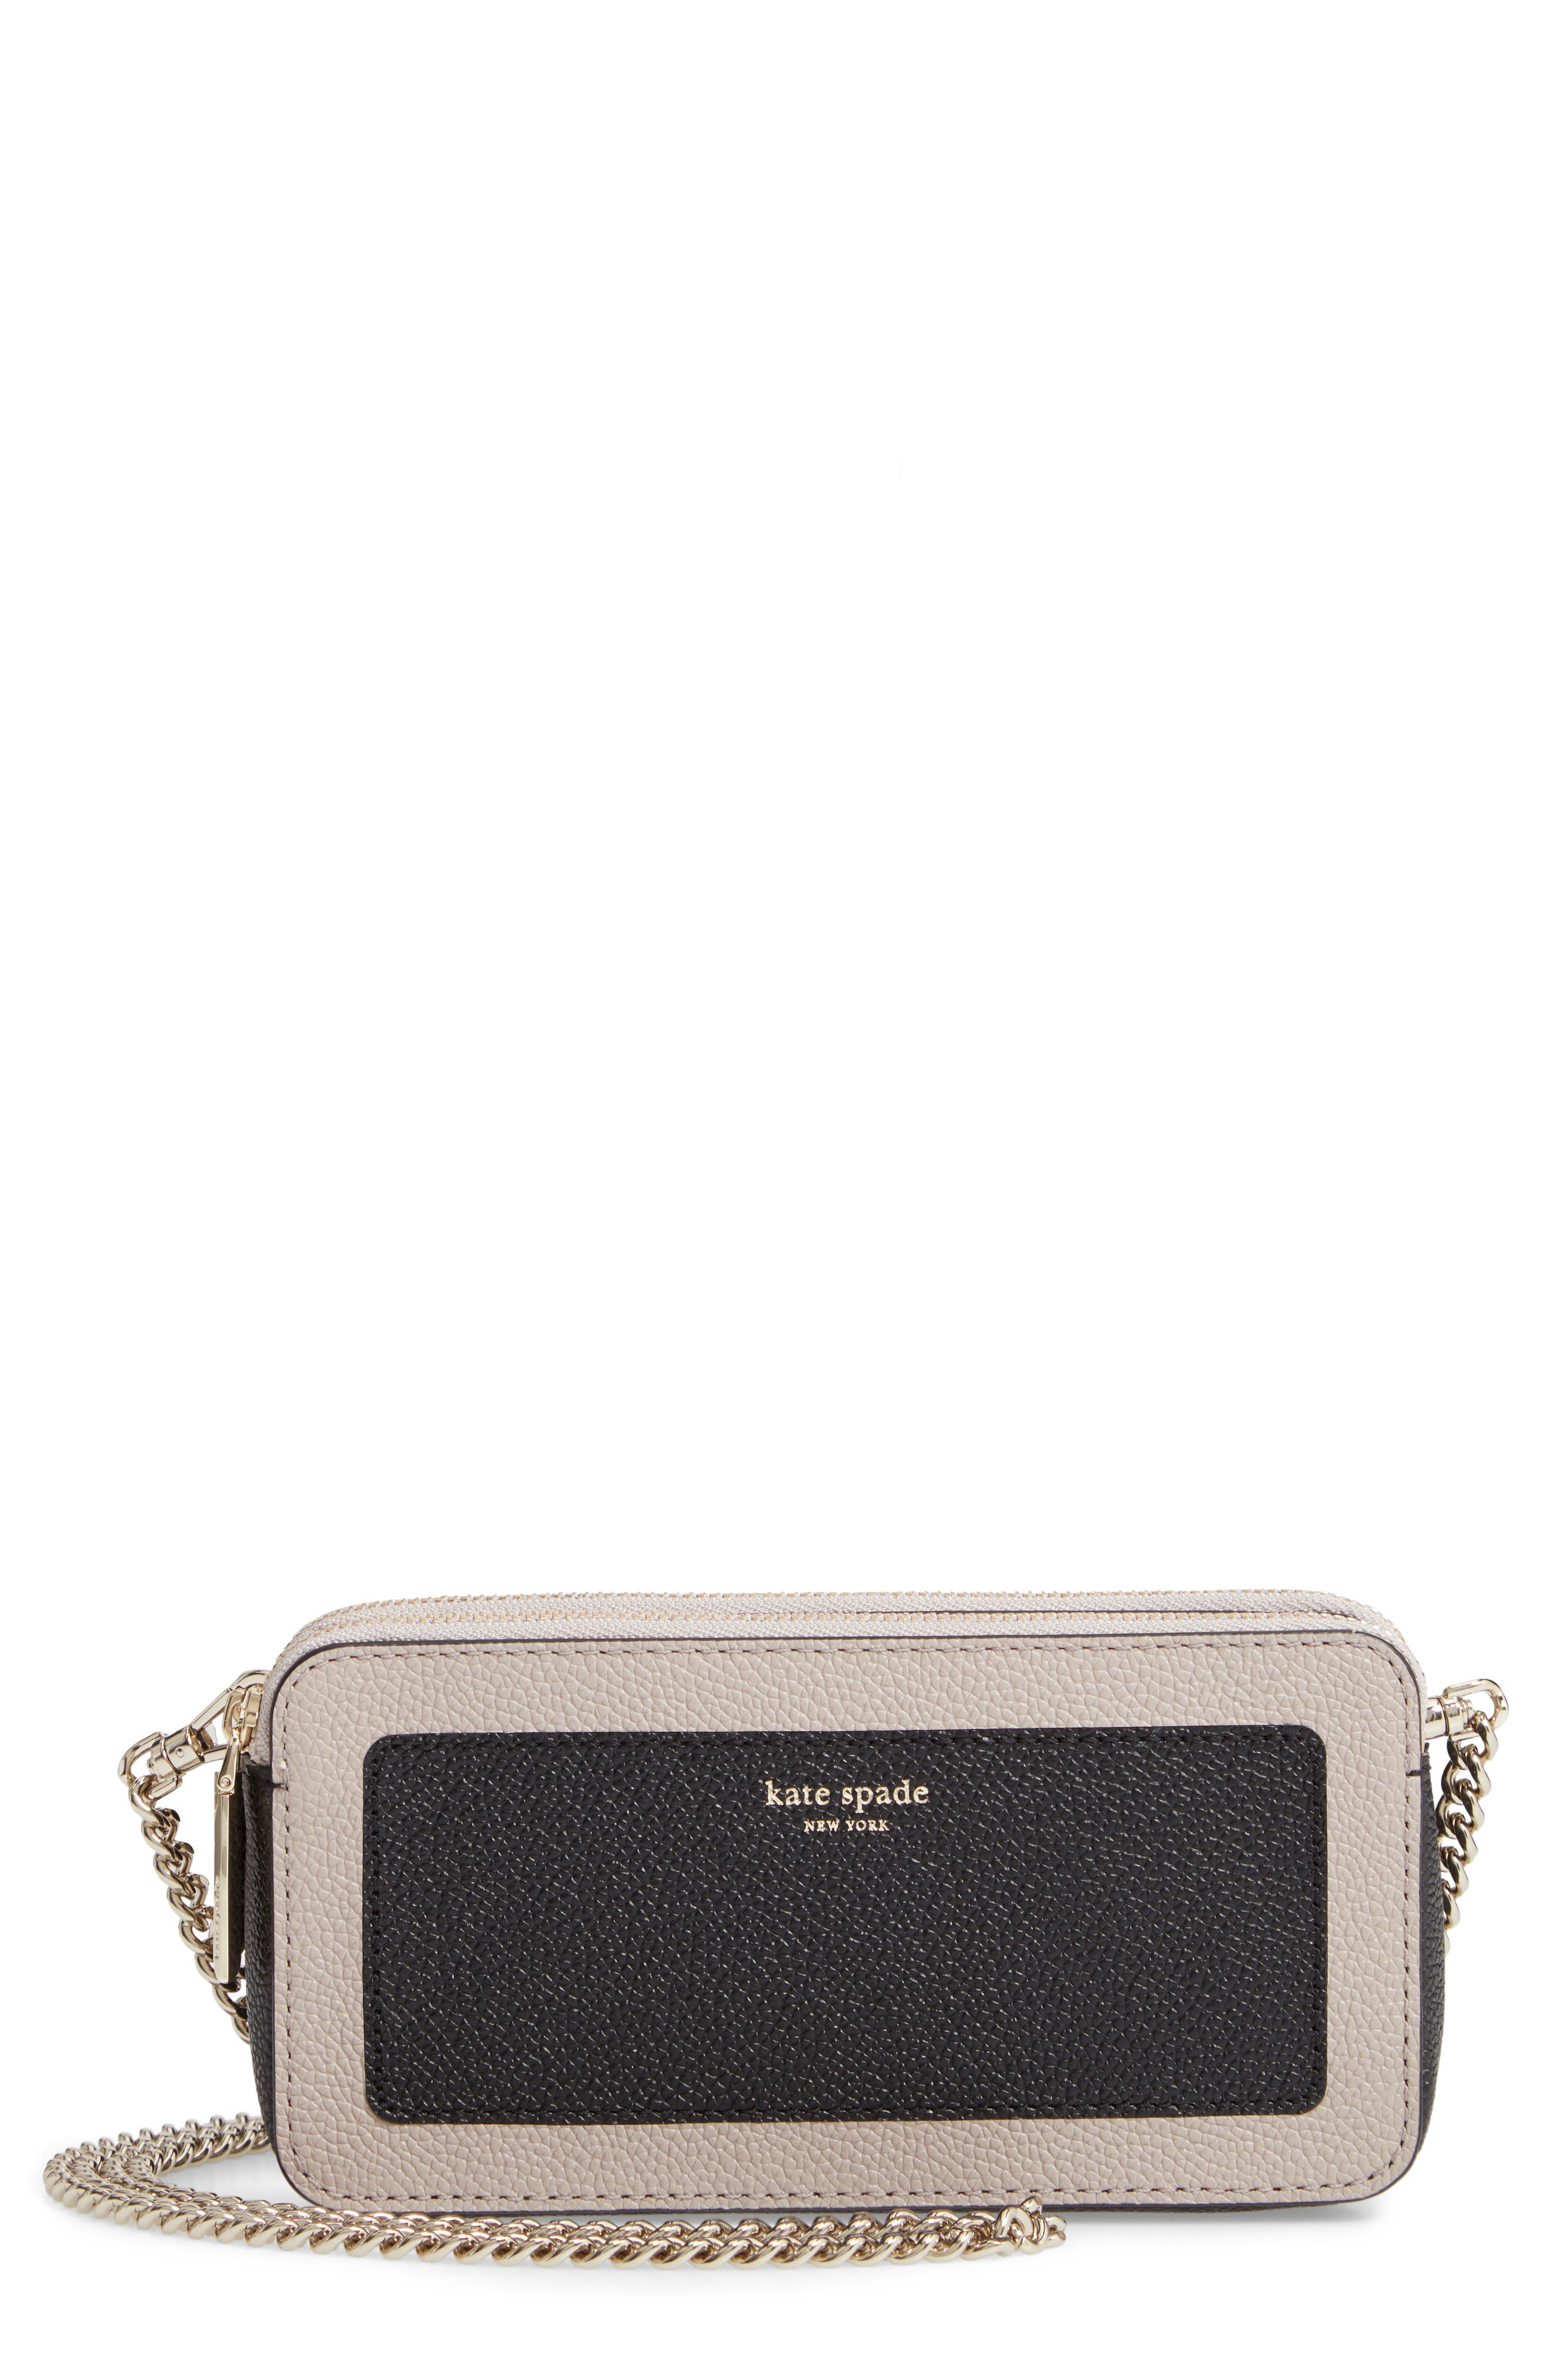 margaux - double zip mini crossbody bag,                             Main thumbnail 1, color,                             BLACK/ WARM TAUPE